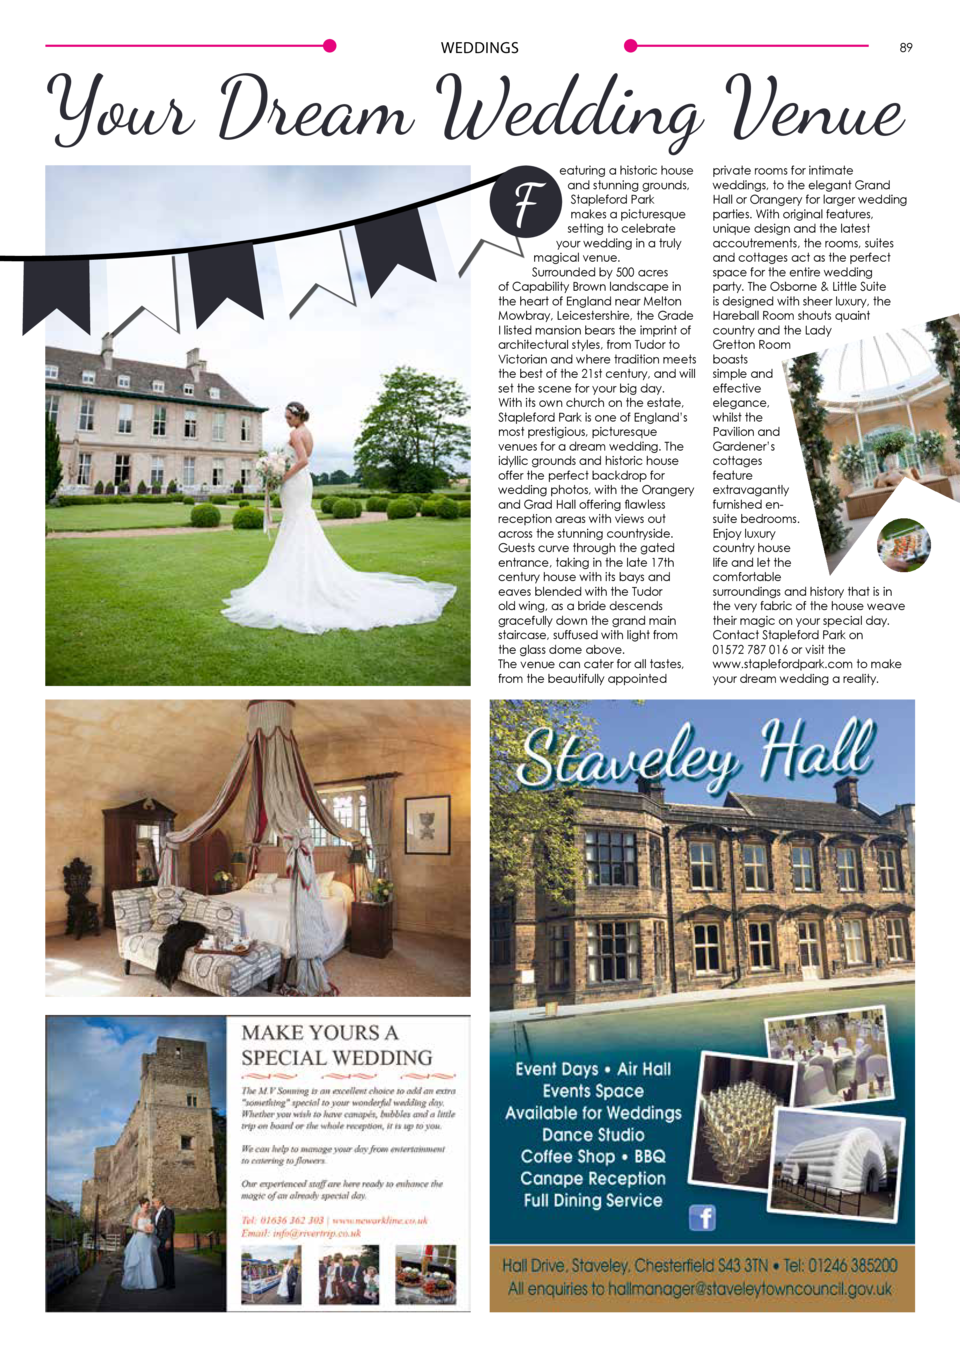 WEDDINGS  89  Your Dream Wedding Venue eaturing a historic house and stunning grounds, Stapleford Park makes a picturesque...